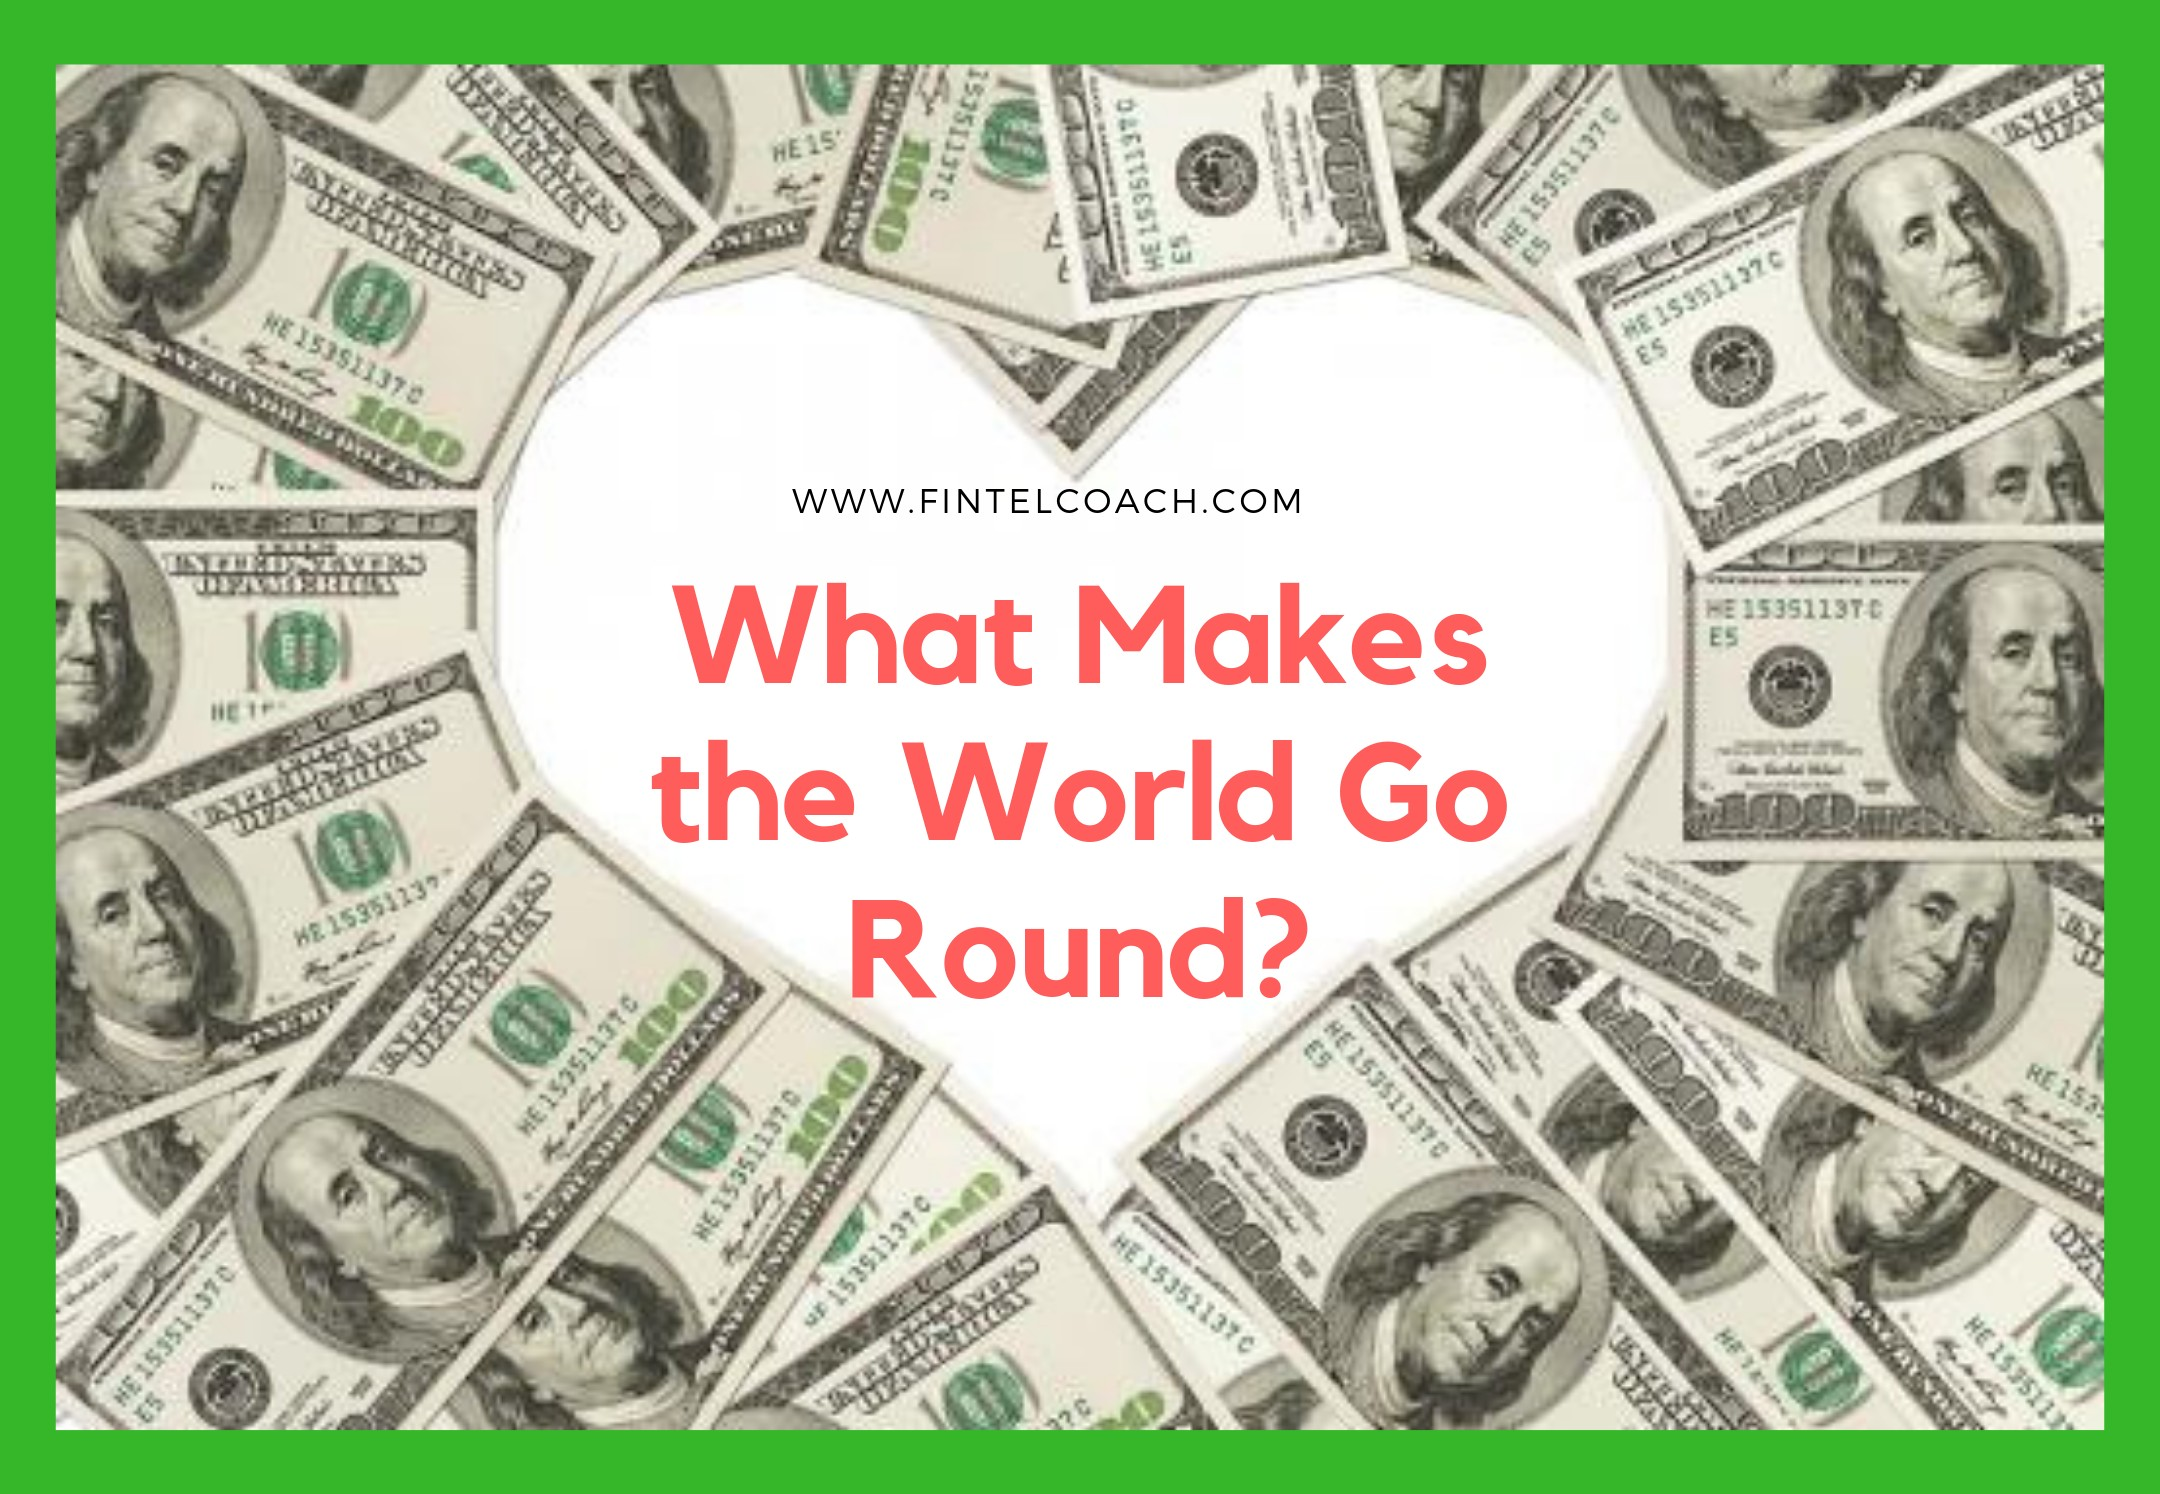 What Makes the World Go Round?